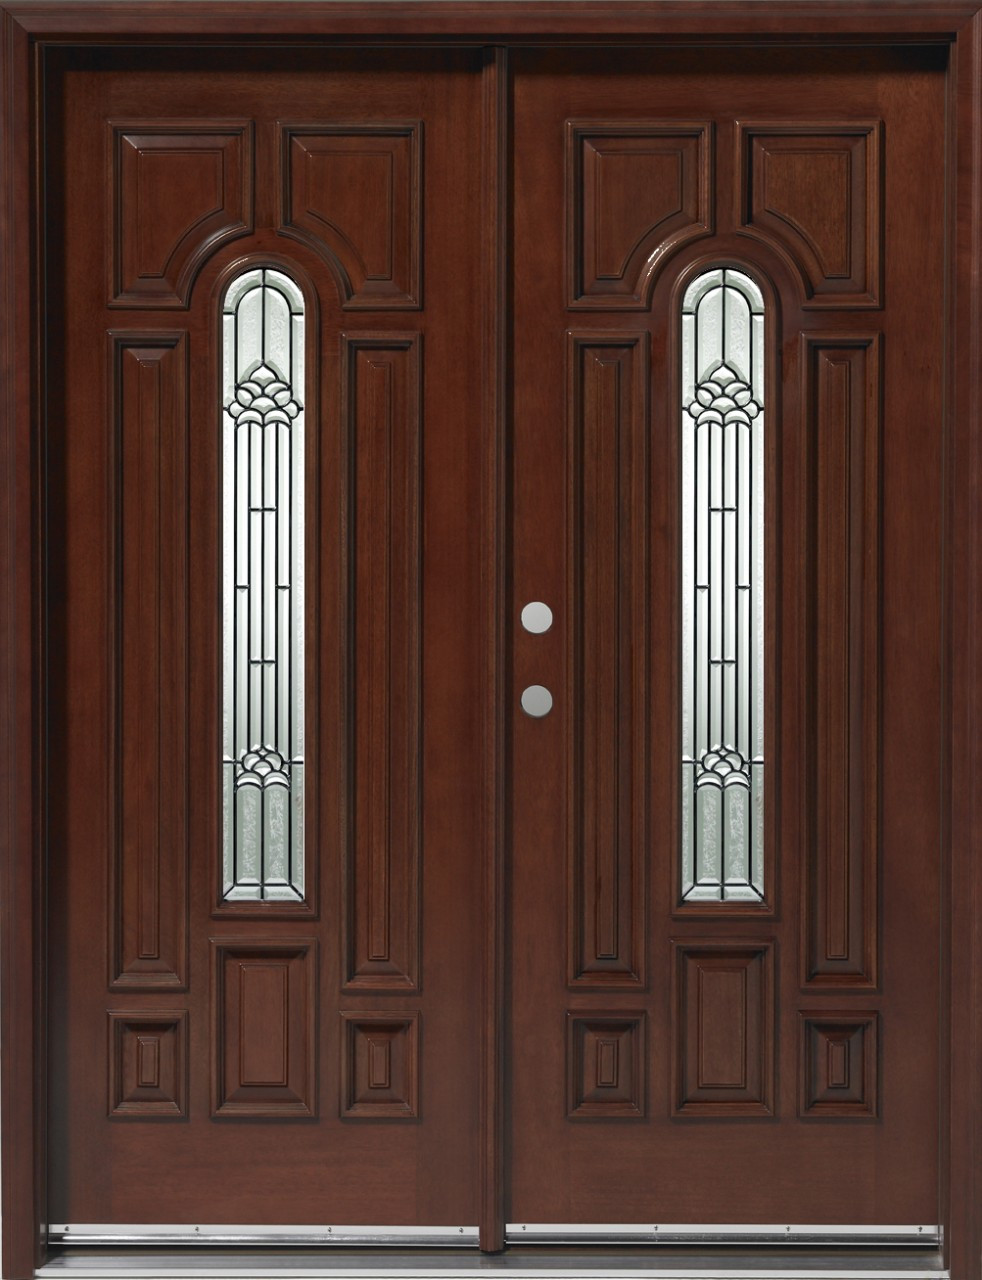 Home entrance door prehung exterior door for Exterior double entry doors